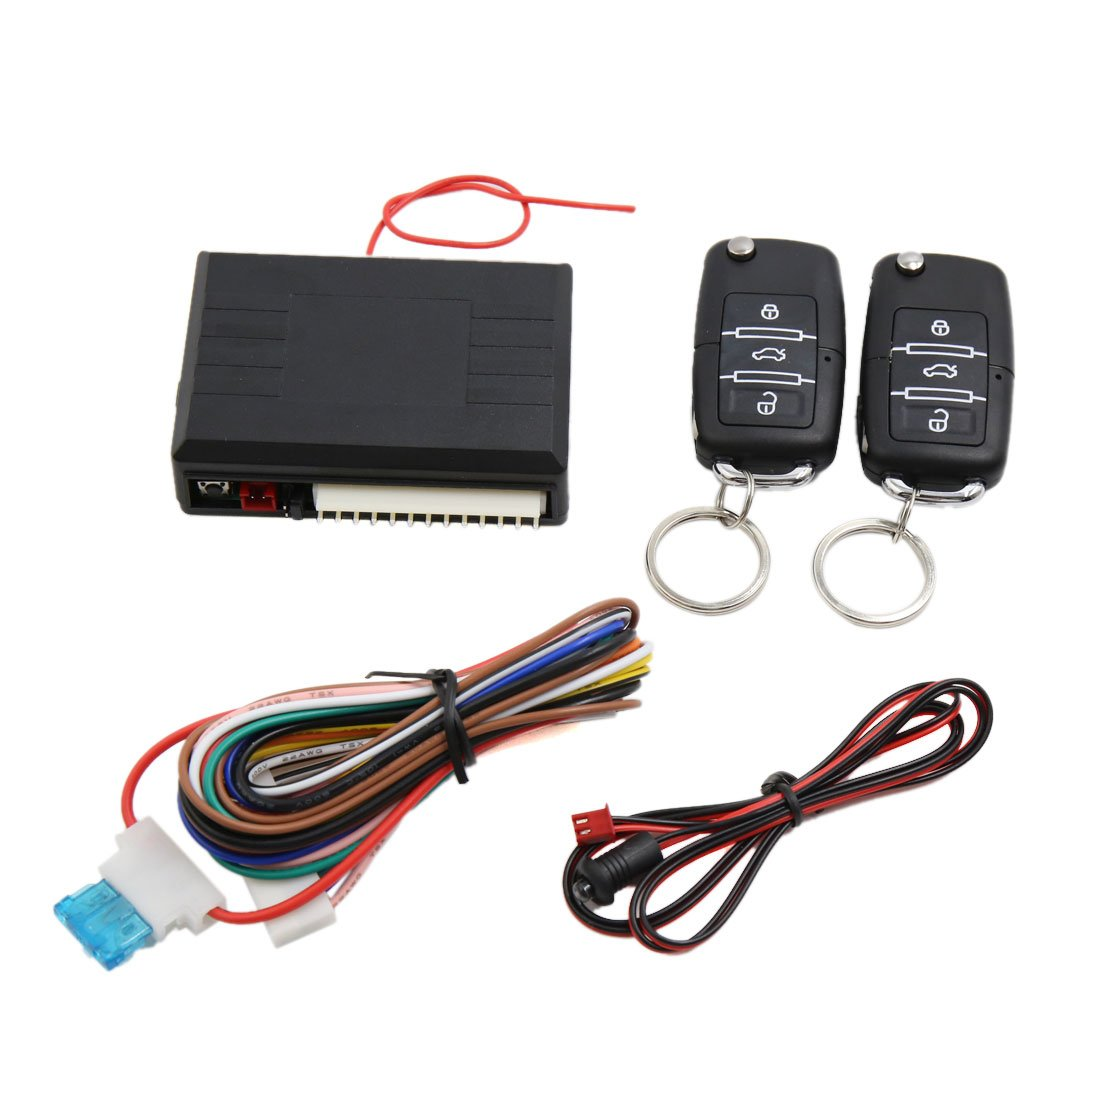 Bighawks M604 R8150 Keyless Entry System Wiring Diagram 55 Car Sl1100 Amazon Com Camrom Universal Remote Central Kit At